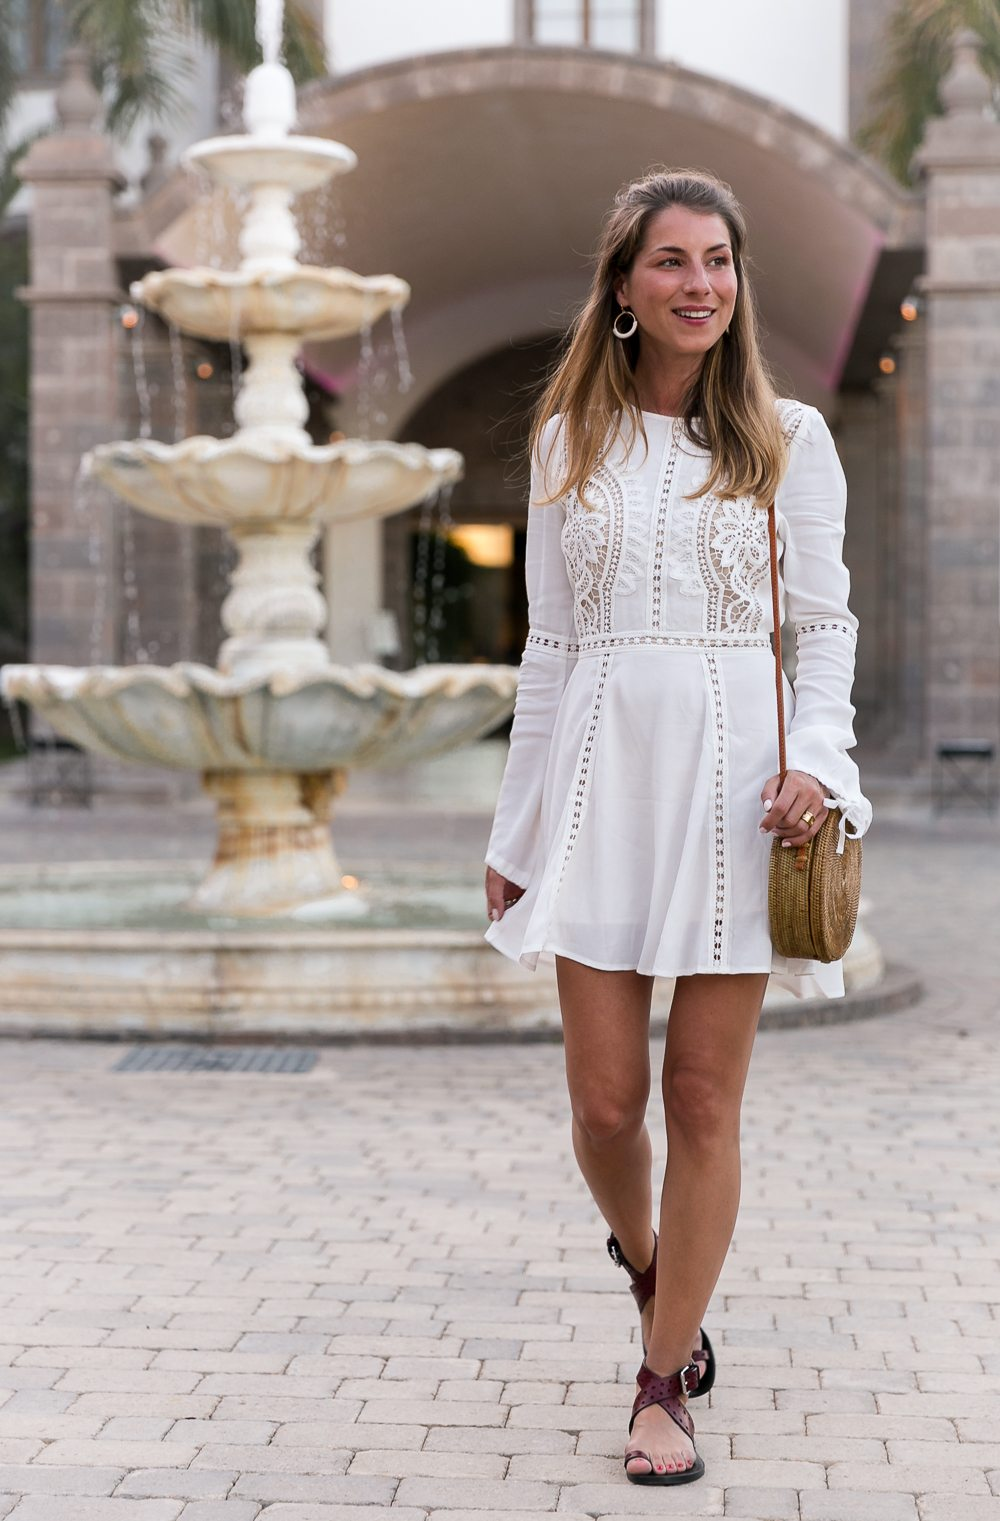 White Lace Dress & Round Bali Bag